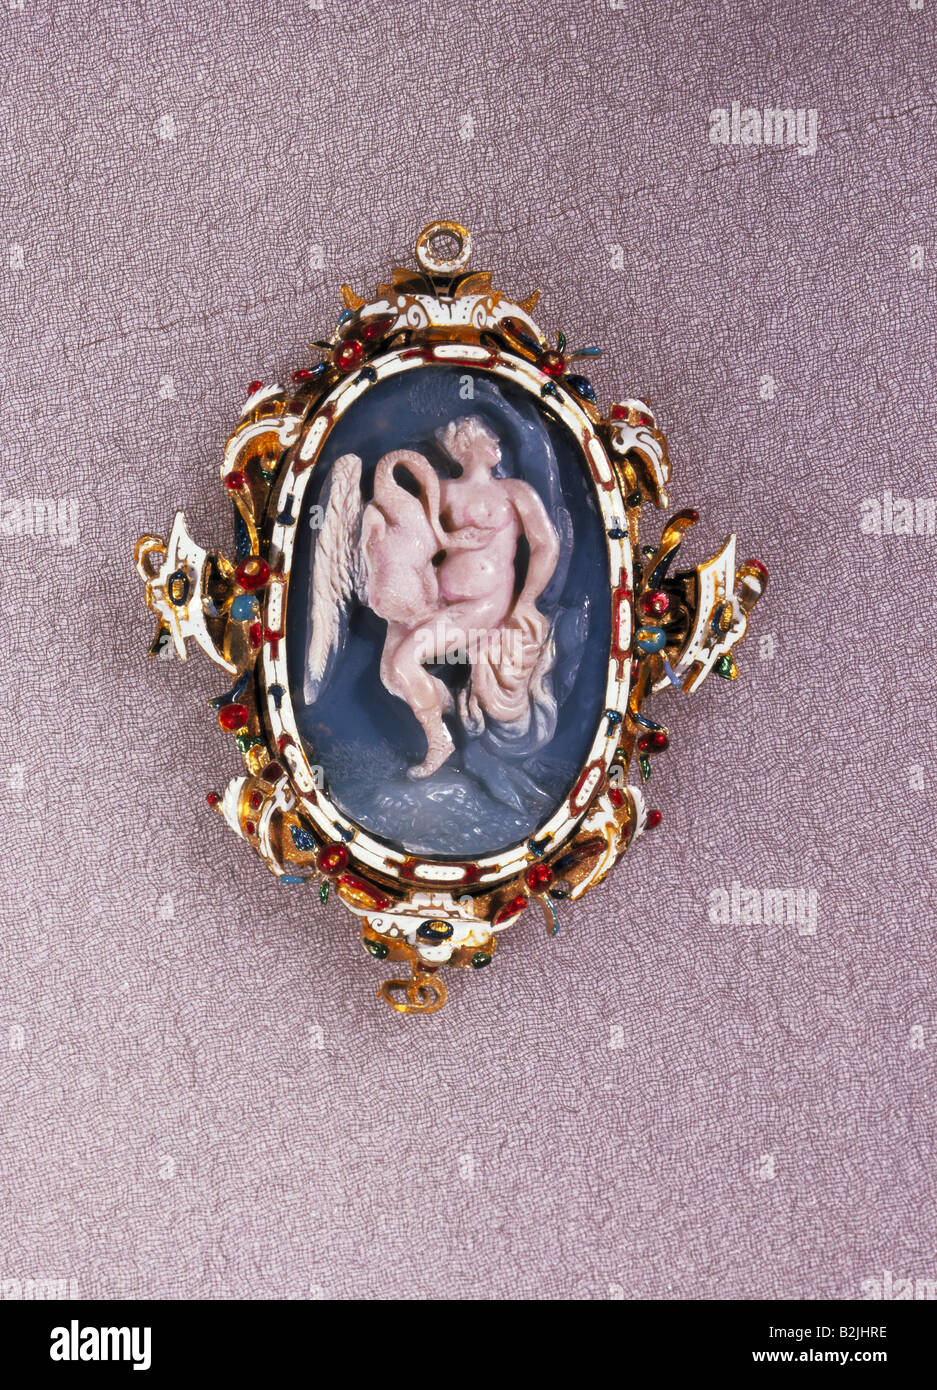 fine arts, jewellery, intaglios, Leda and the Swan, agate, 3.4 cm x 2.3 cm, holder (Prague) 5.7 cm x 4.4 cm, early - Stock Image